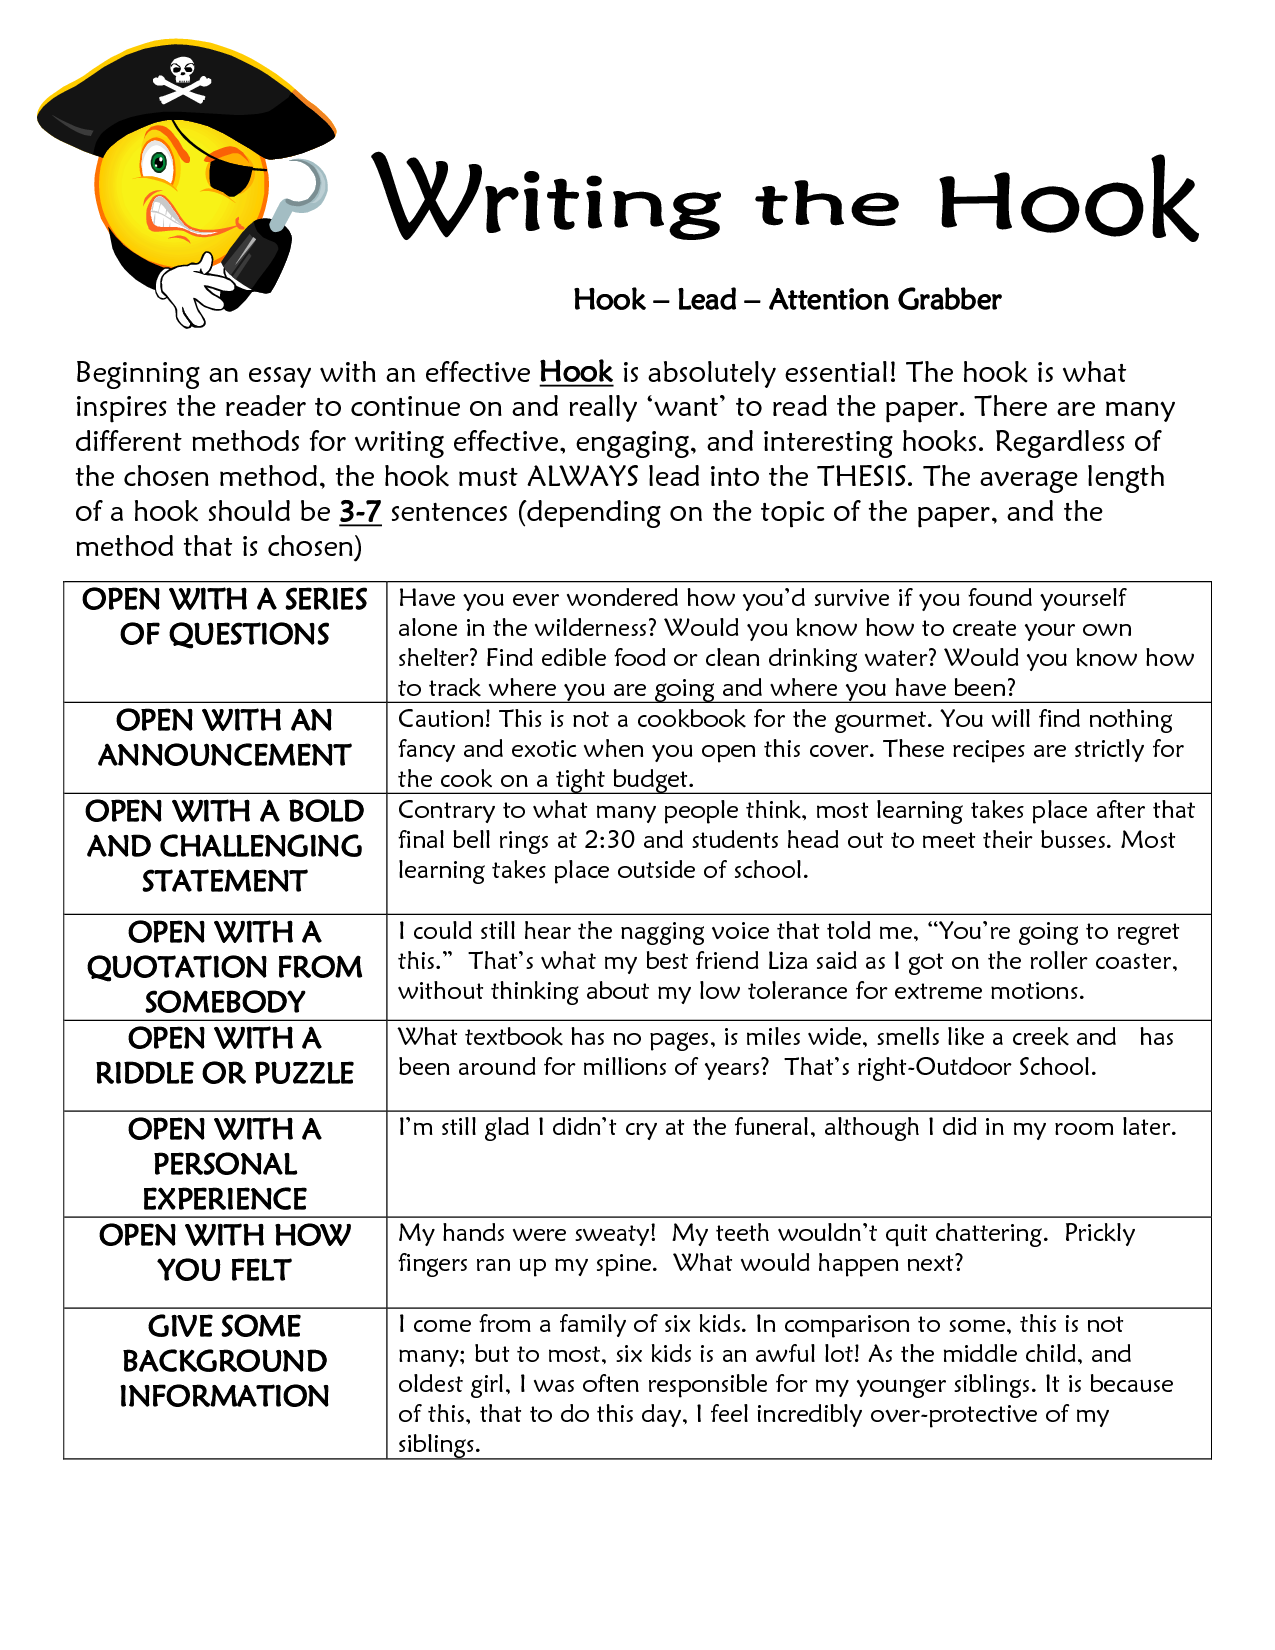 002 Essay Example Good Hooks For Essays Unforgettable About Culture Heroes Full